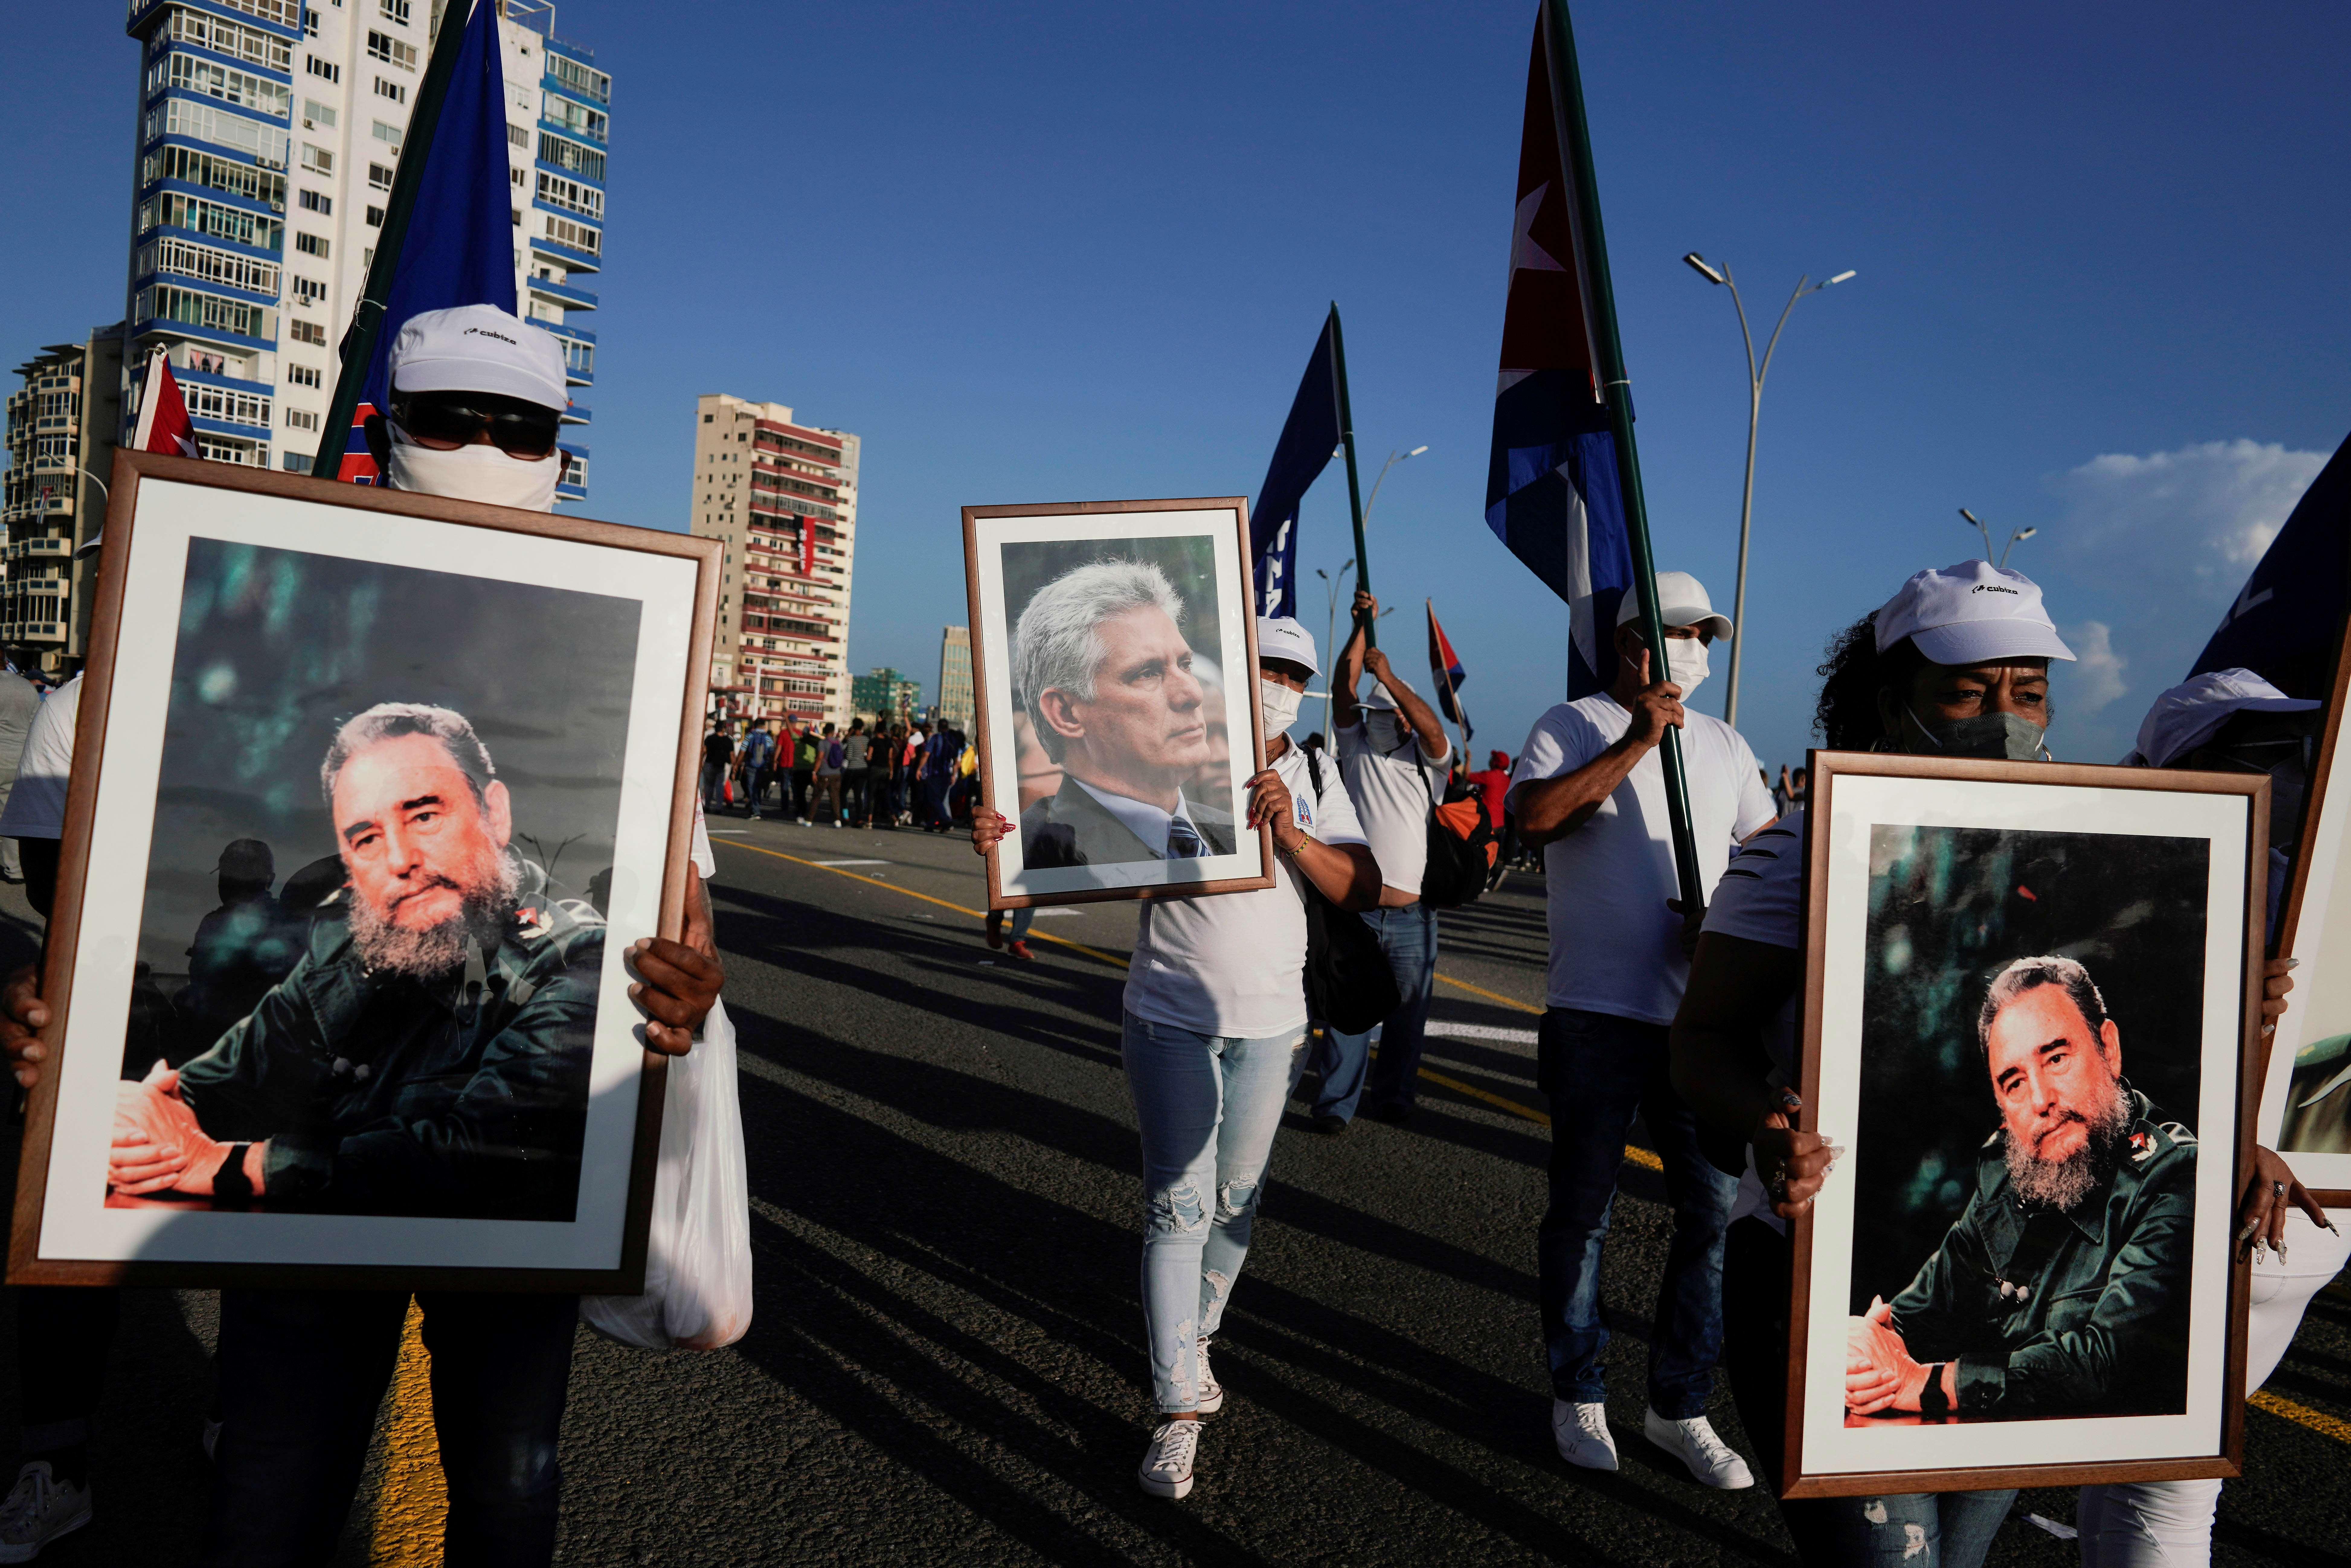 People carry images of late Cuban President Fidel Castro and Cuba's President and First Secretary of the Communist Party Miguel Diaz-Canel during a rally in Havana, Cuba, July 17, 2021. REUTERS/Alexandre Meneghini